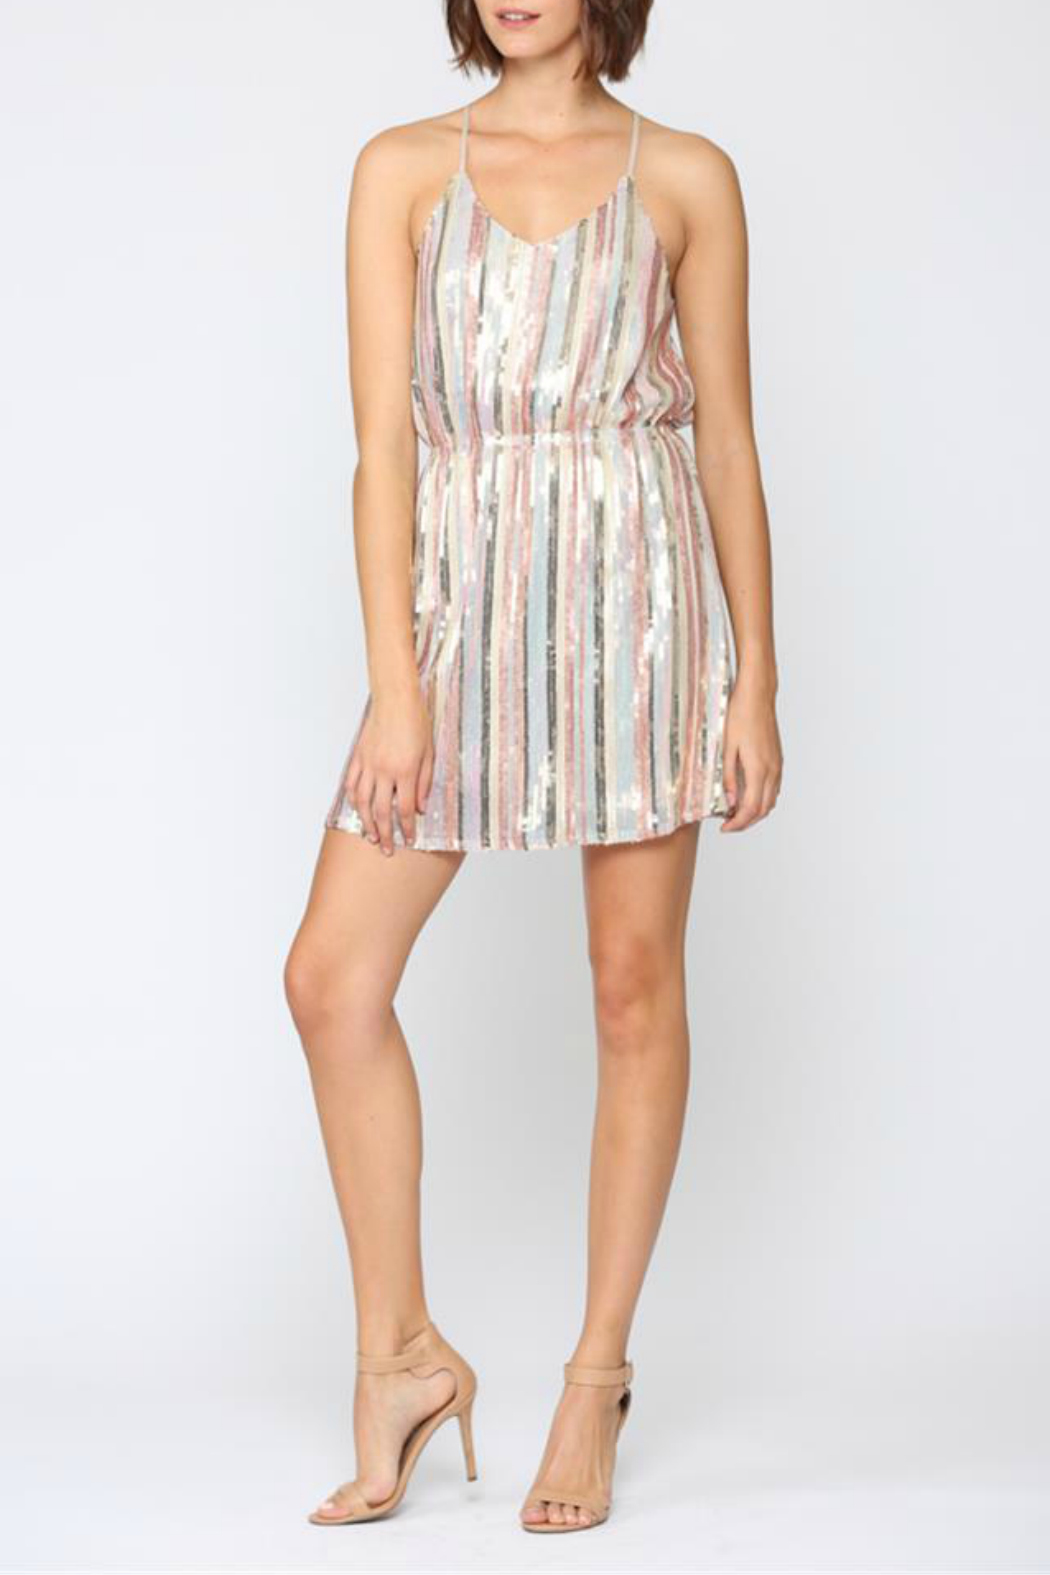 FATE by LFD STRIPE SEQUIN CAMI DRESS - Main Image